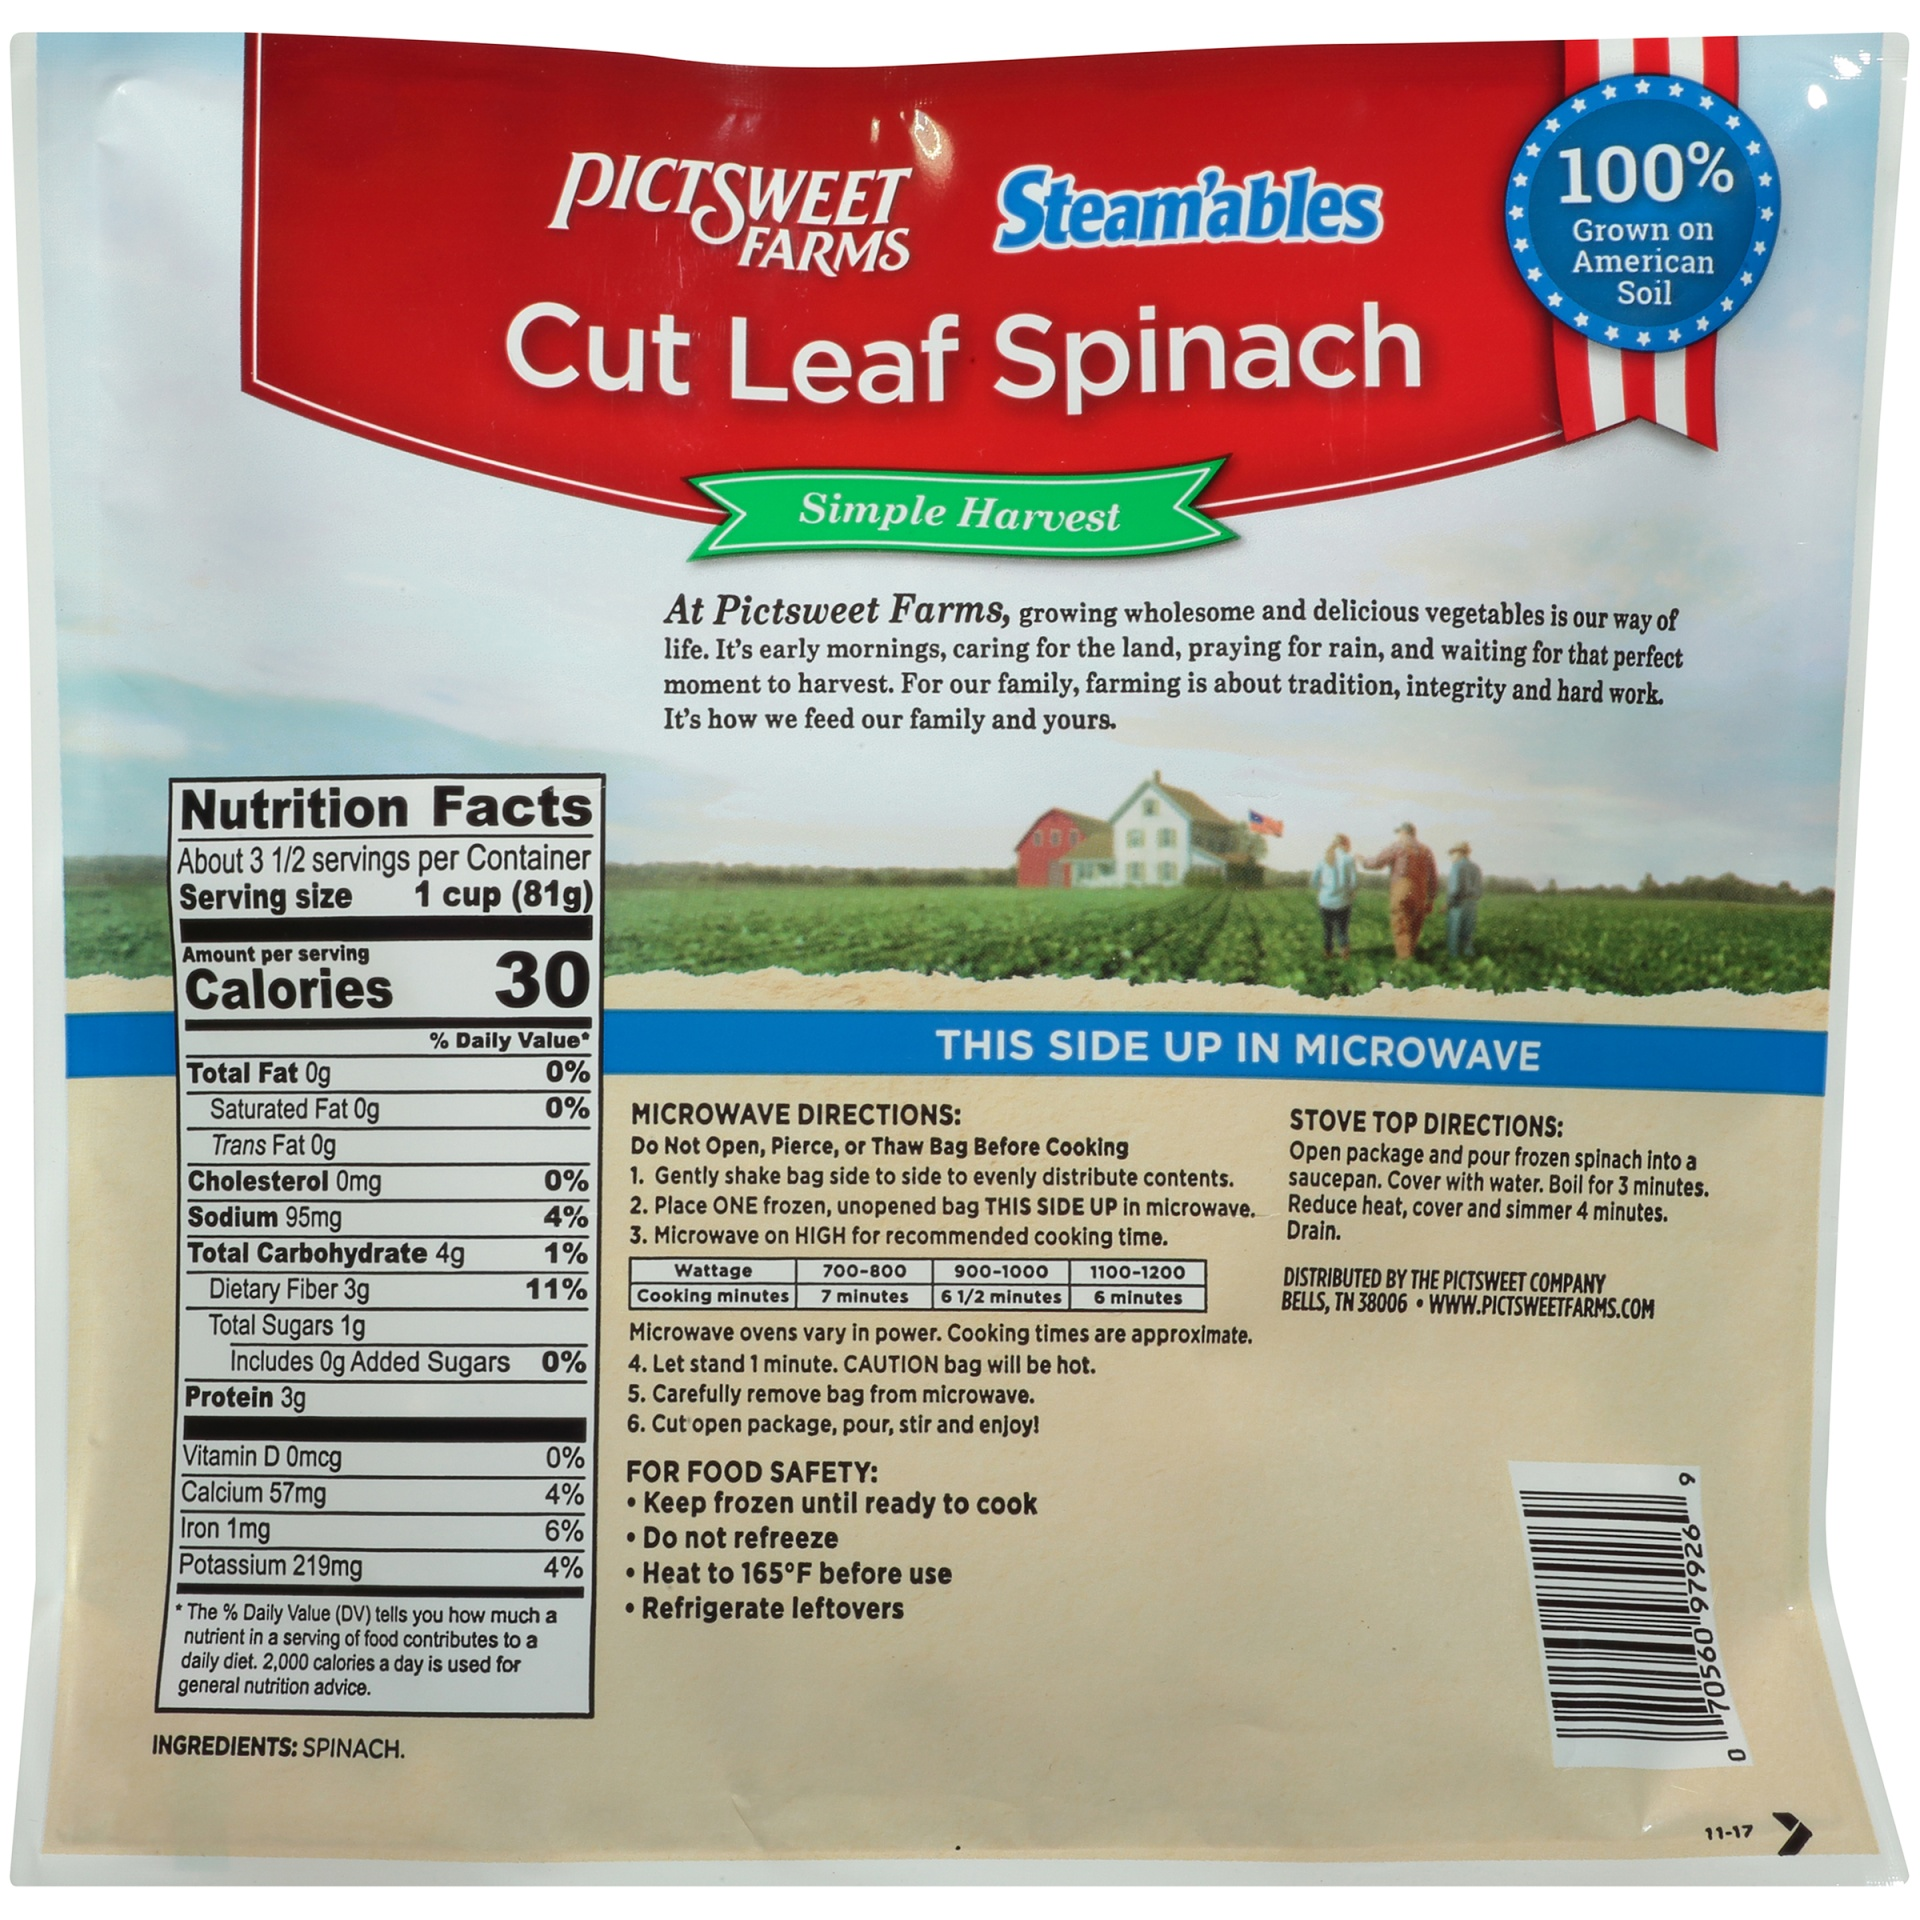 slide 4 of 6, PictSweet Steam'ables Cut Leaf Spinach,